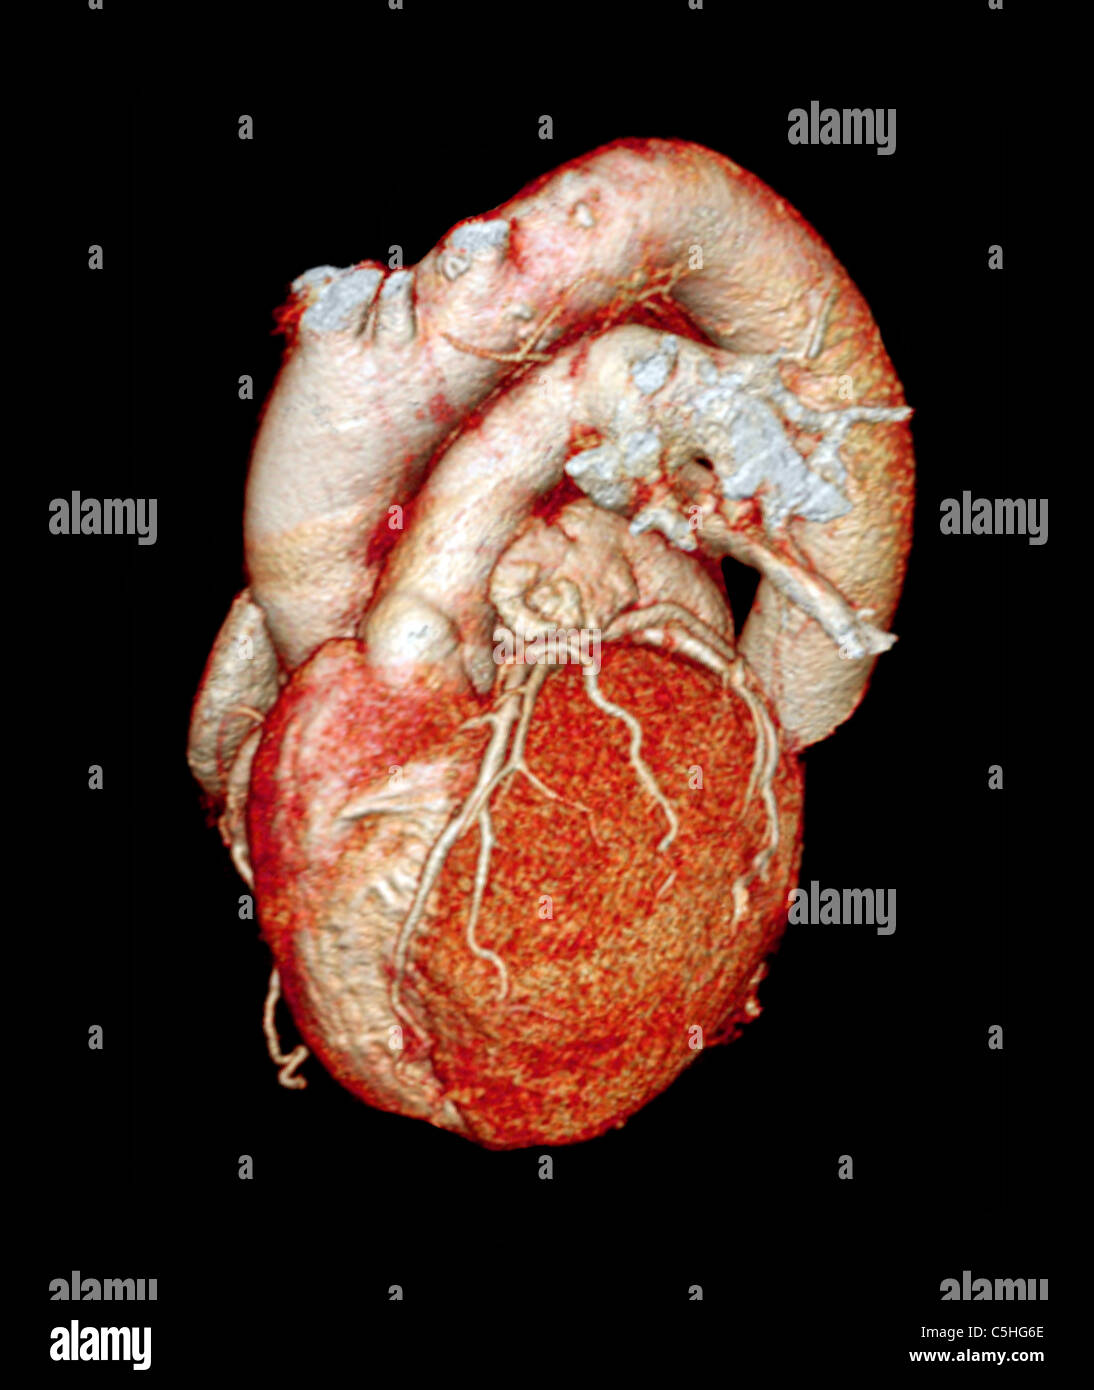 Normal heart, 3D CT scan Stock Photo: 37879926 - Alamy